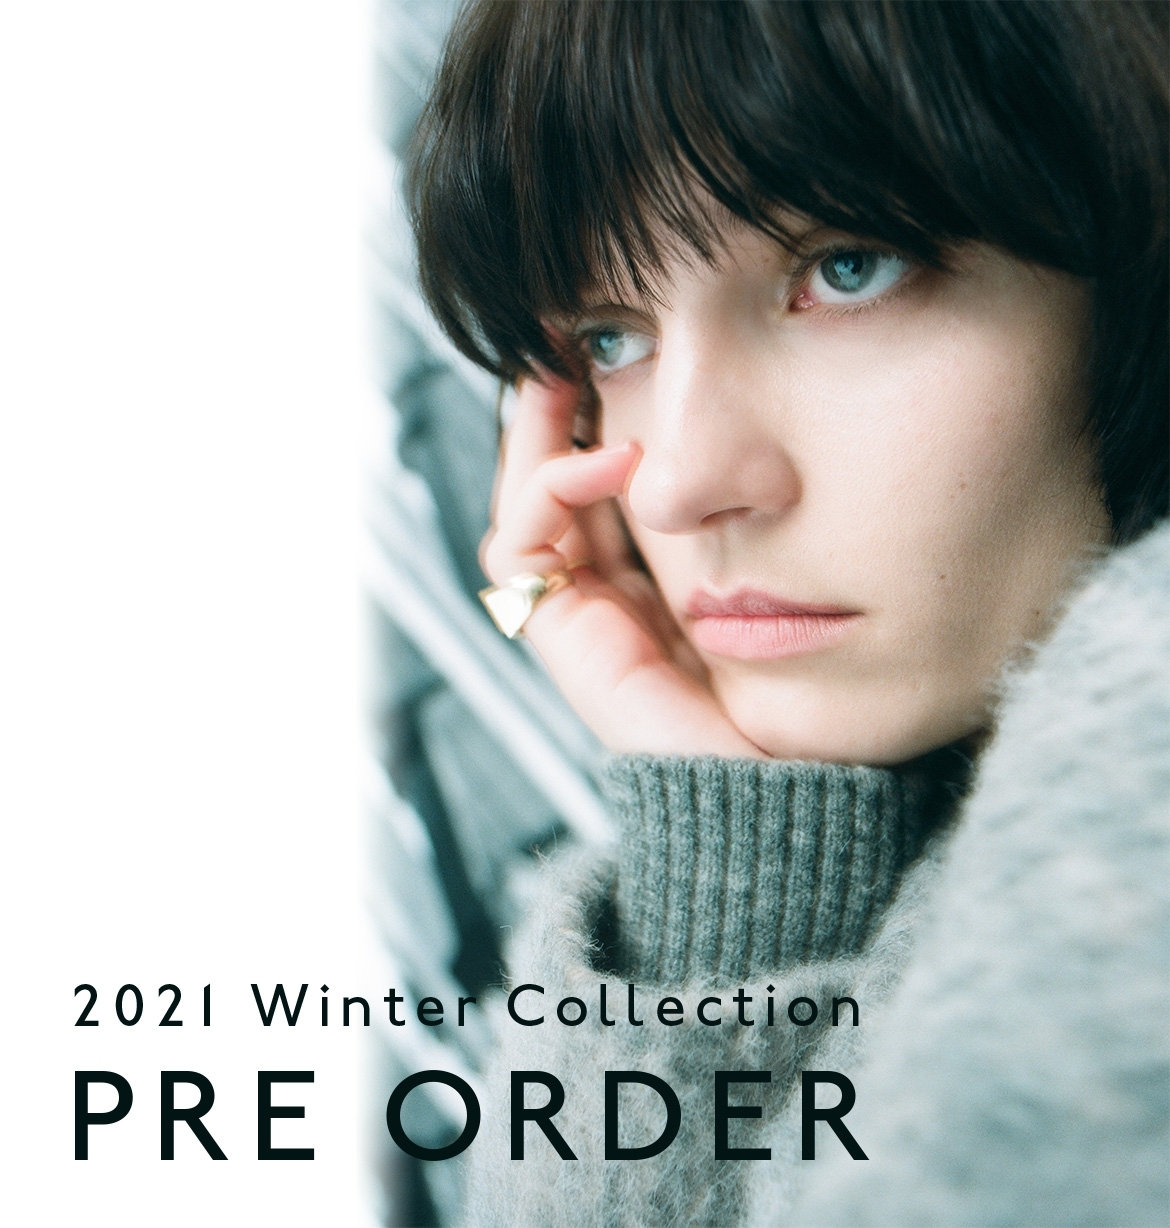 Winter collection preorder